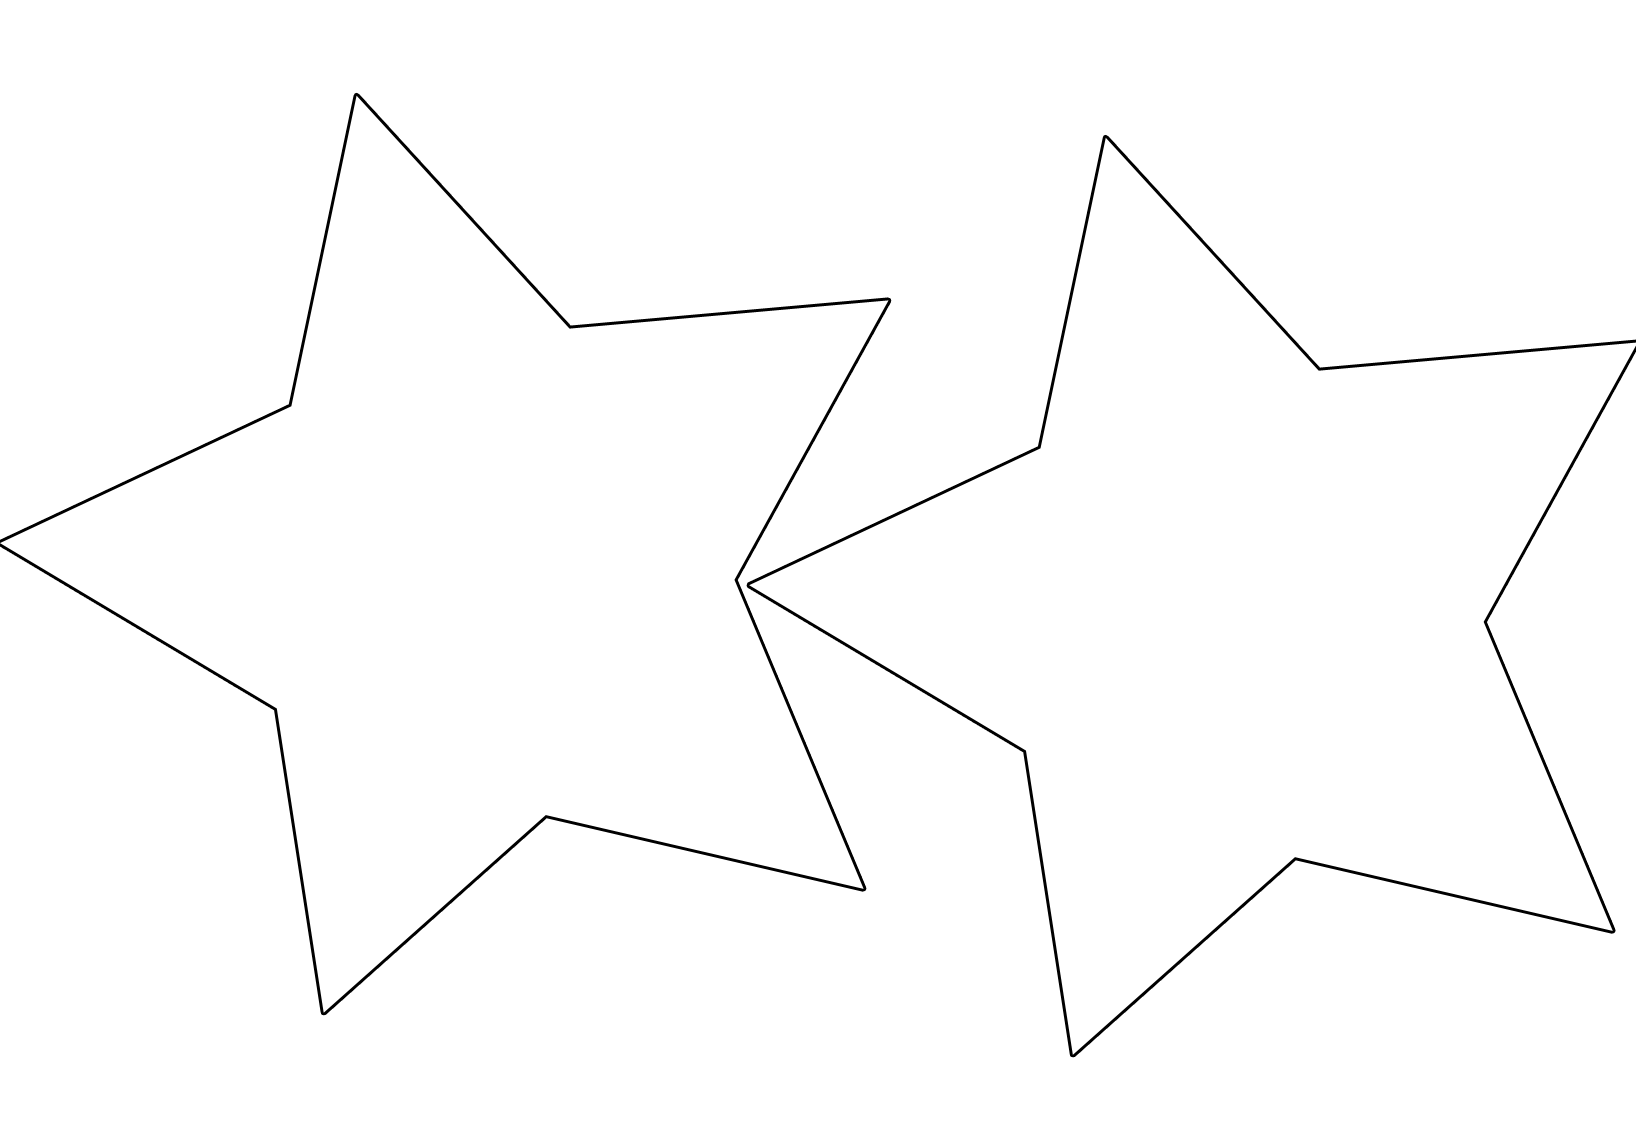 Small star template clipart best for Small star template printable free